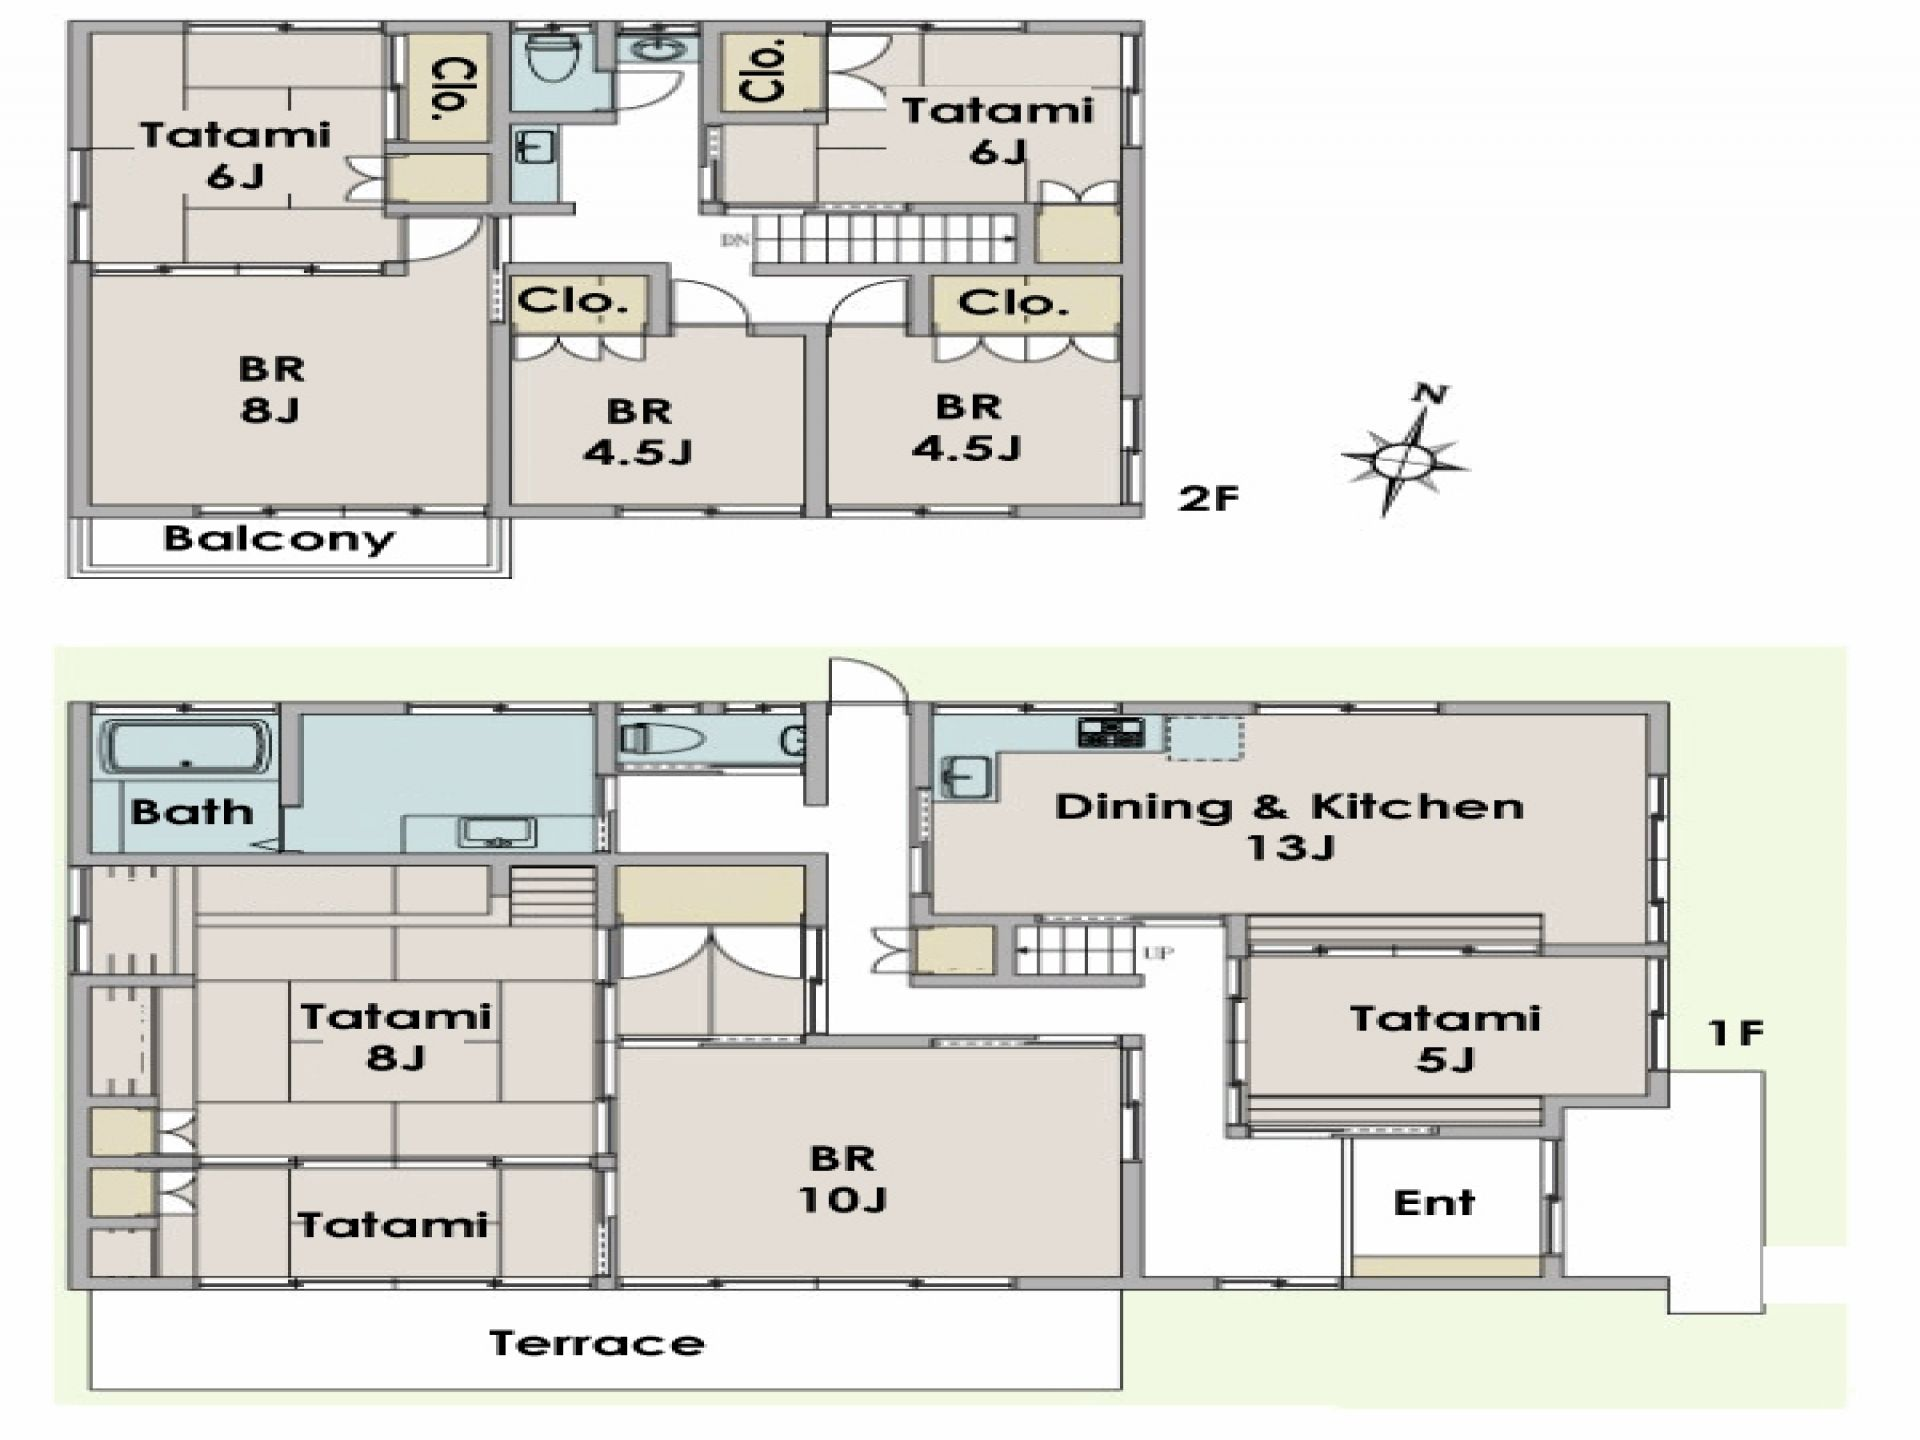 traditional japanese house floor plan - Google Search ... on townhouse luxury interior, townhouse community, townhouse renderings, townhouse plans for narrow lots, townhouse elevations, townhouse construction, 2 car garage duplex plans, townhouse master plan, townhouse rentals, townhouse layout, townhouse design, townhouse drawings, townhouse deck plans, garage apartment plans, townhouse blueprints, townhouse home plans with basement,